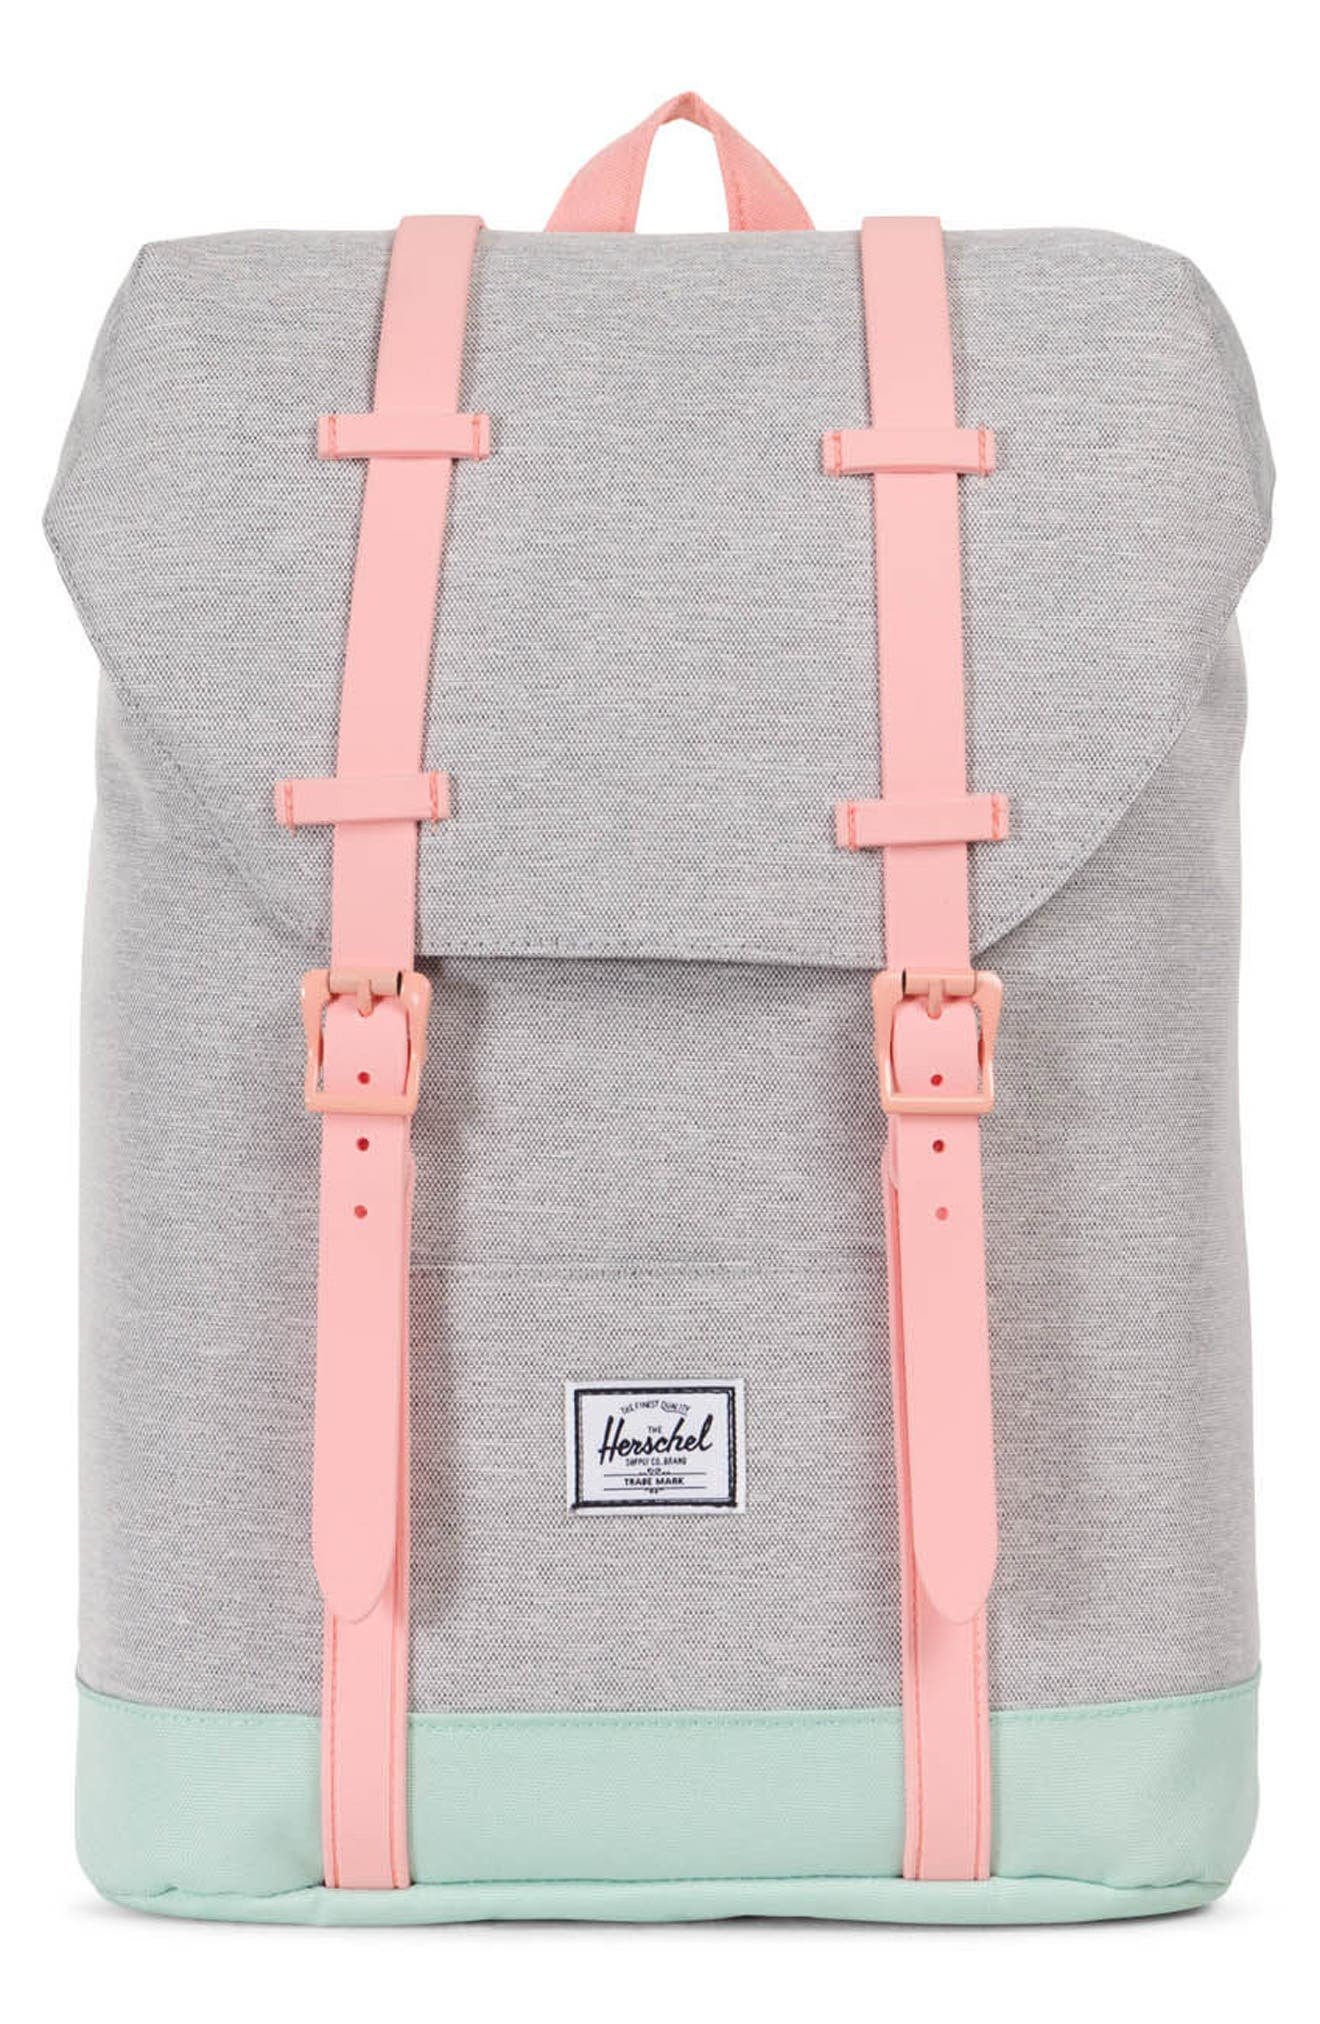 Retreat Backpack,                             Main thumbnail 1, color,                             Light Grey/ Yucca/ Peach